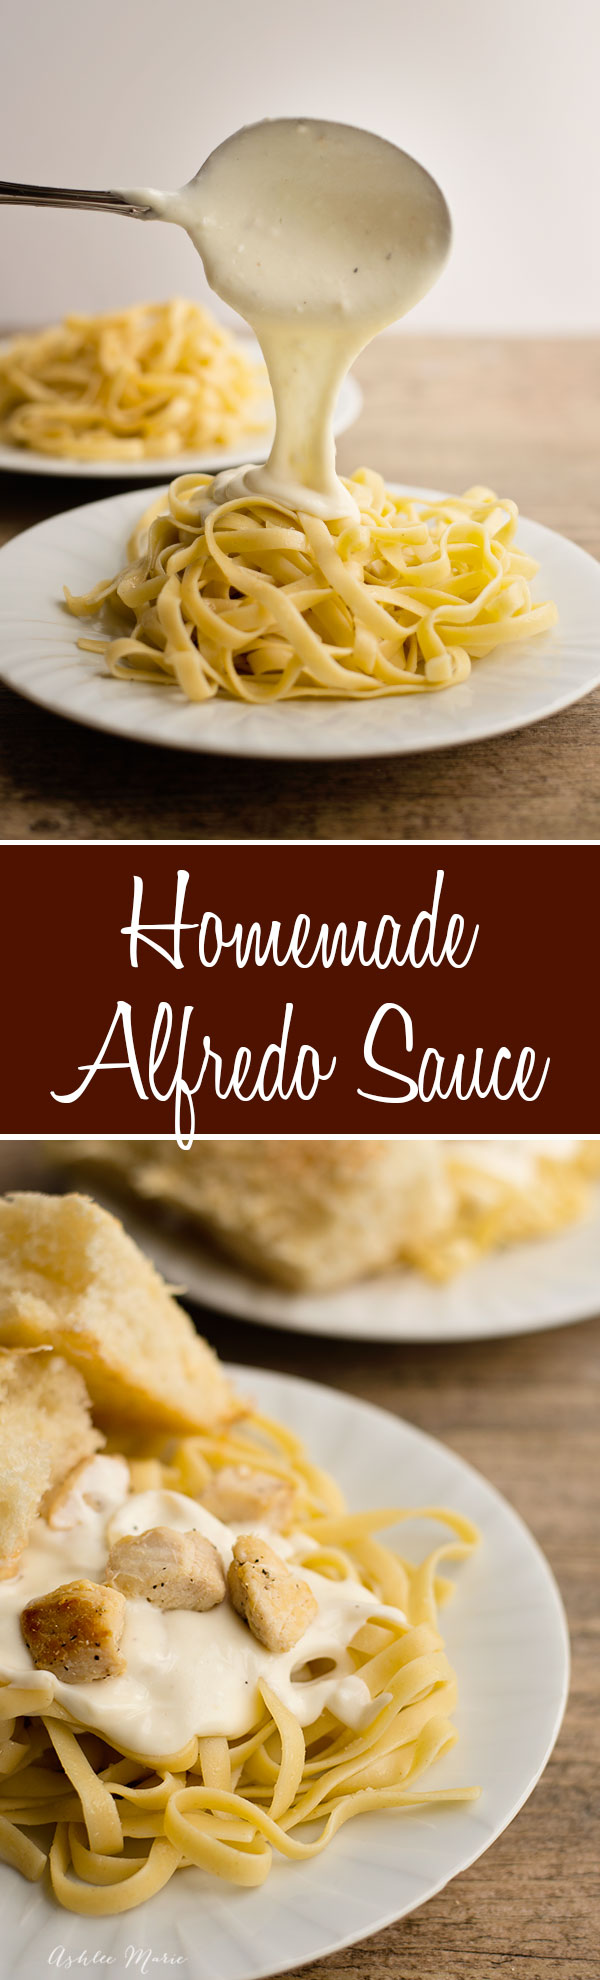 it doesnt get much better than creamy, cheesy homemade alfredo sauce. this recipe is easy to make and is always a huge hit